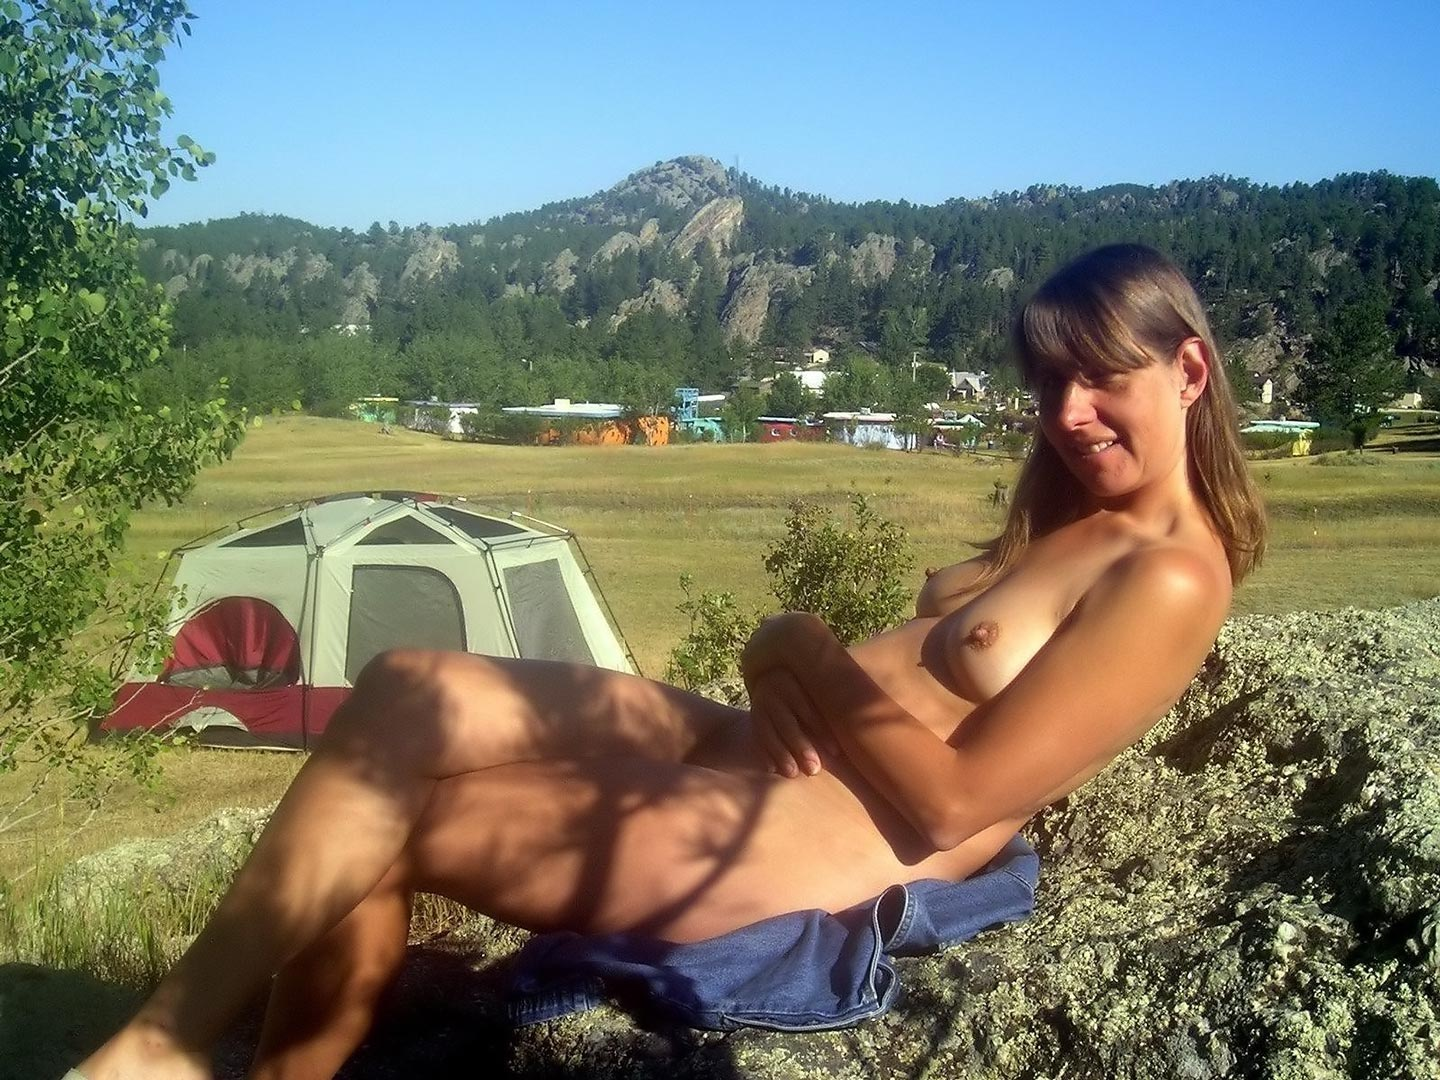 nudist camping tgp